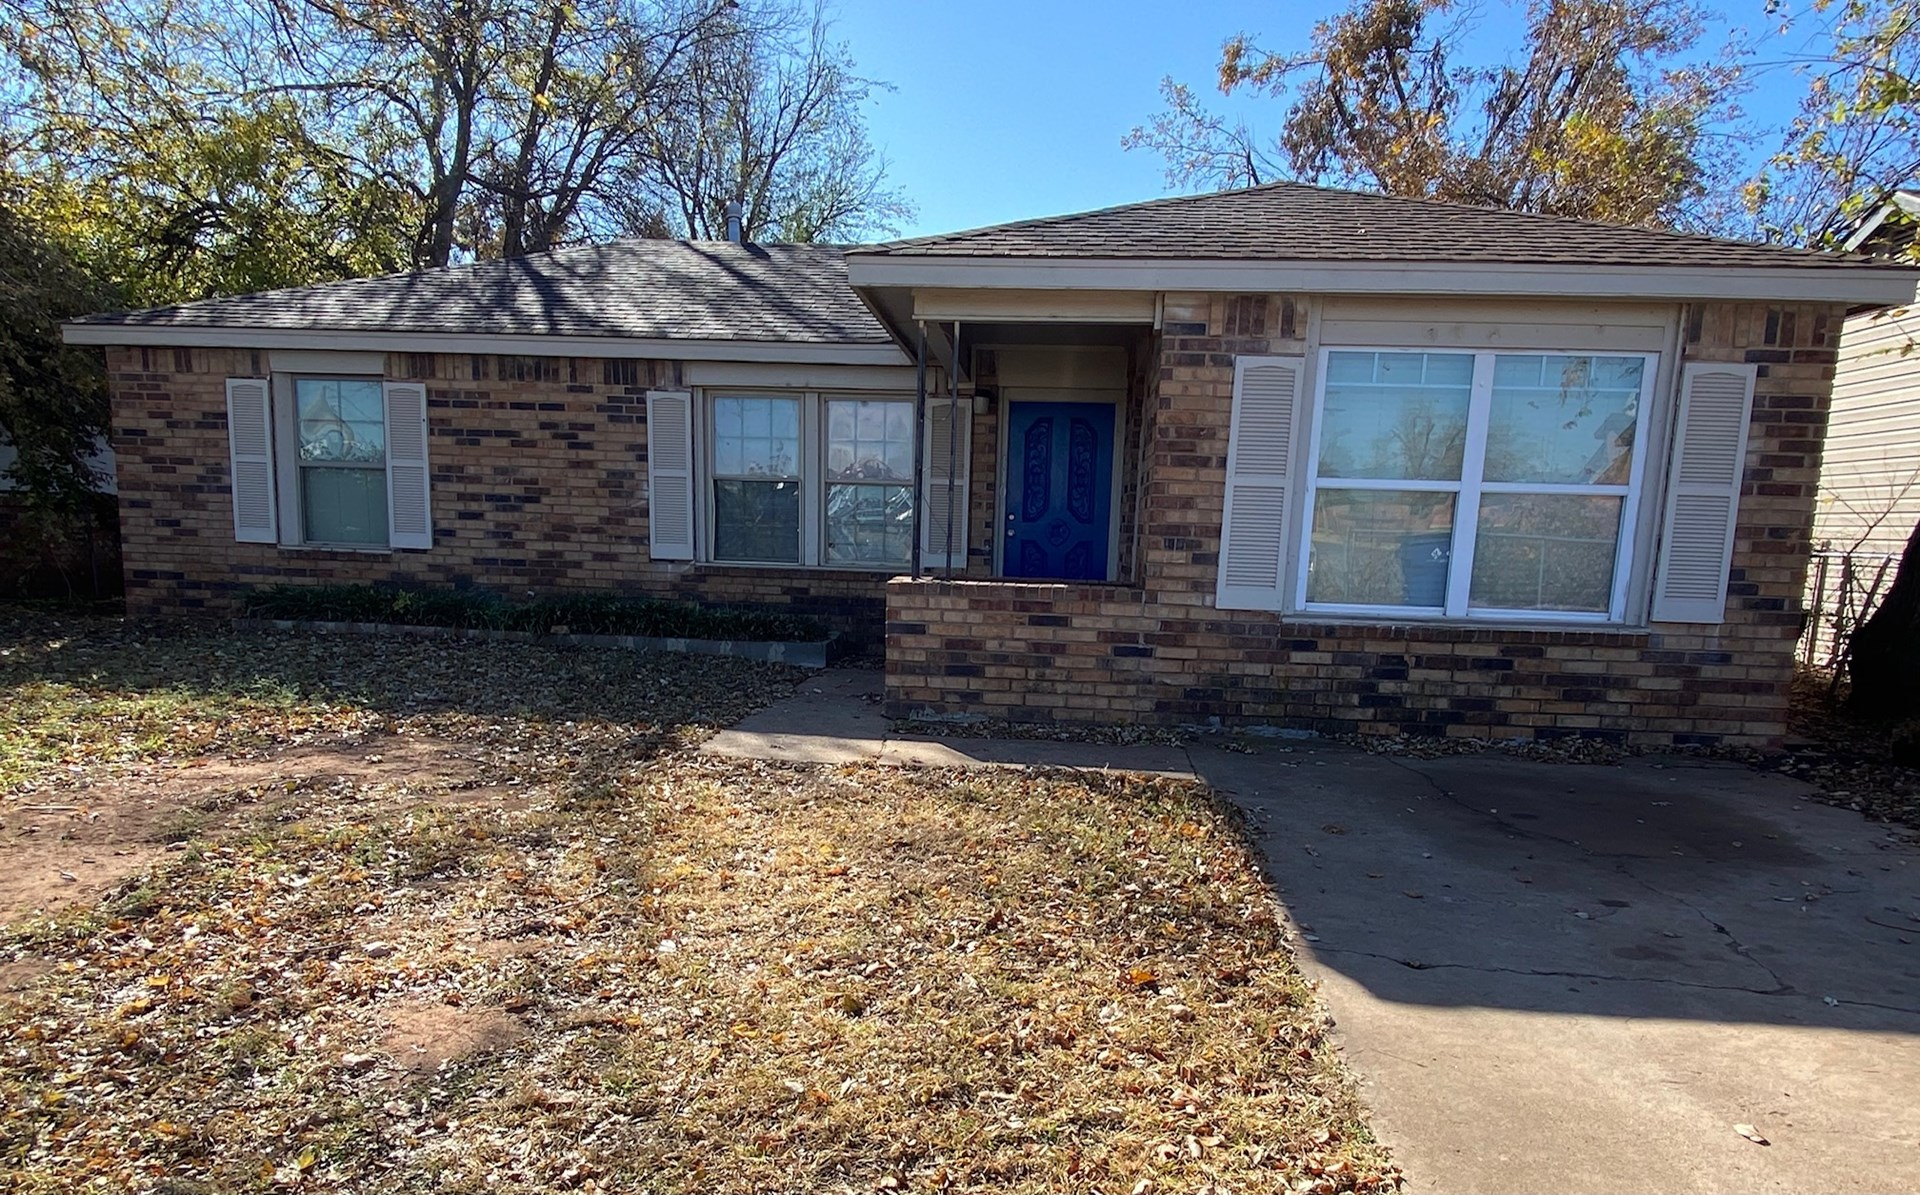 Caddo County 3 Bedroom  Brick Home For Sale Anadarko OK